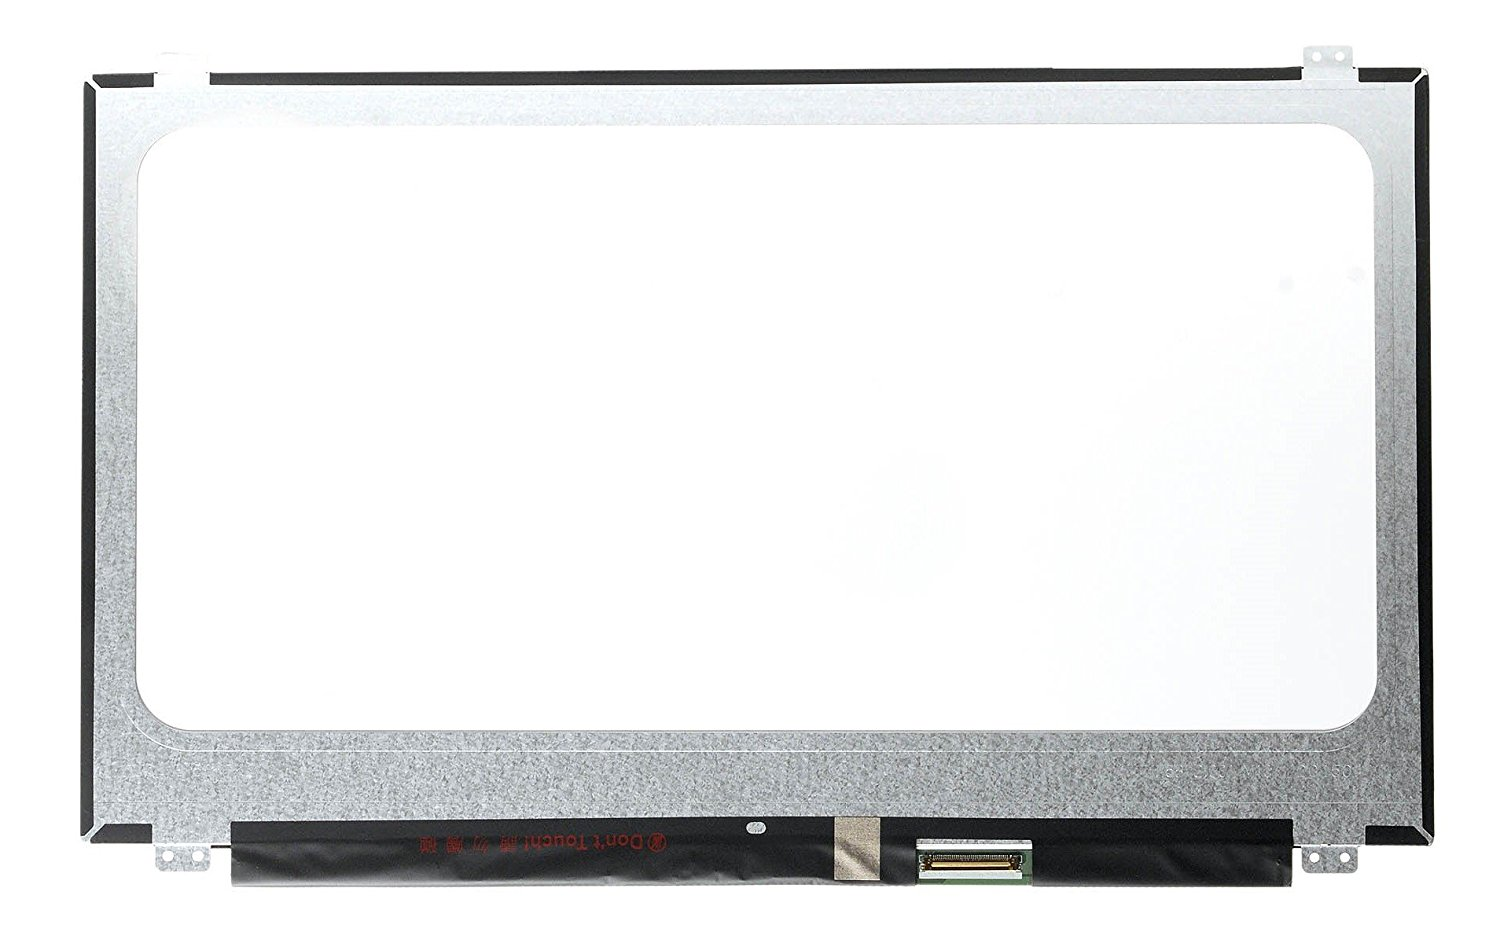 For Dell 15 5559 15.6 LED LCD Touch Screen WXGA HD 1366x768 40 Pin LTN156AT40For Dell 15 5559 15.6 LED LCD Touch Screen WXGA HD 1366x768 40 Pin LTN156AT40